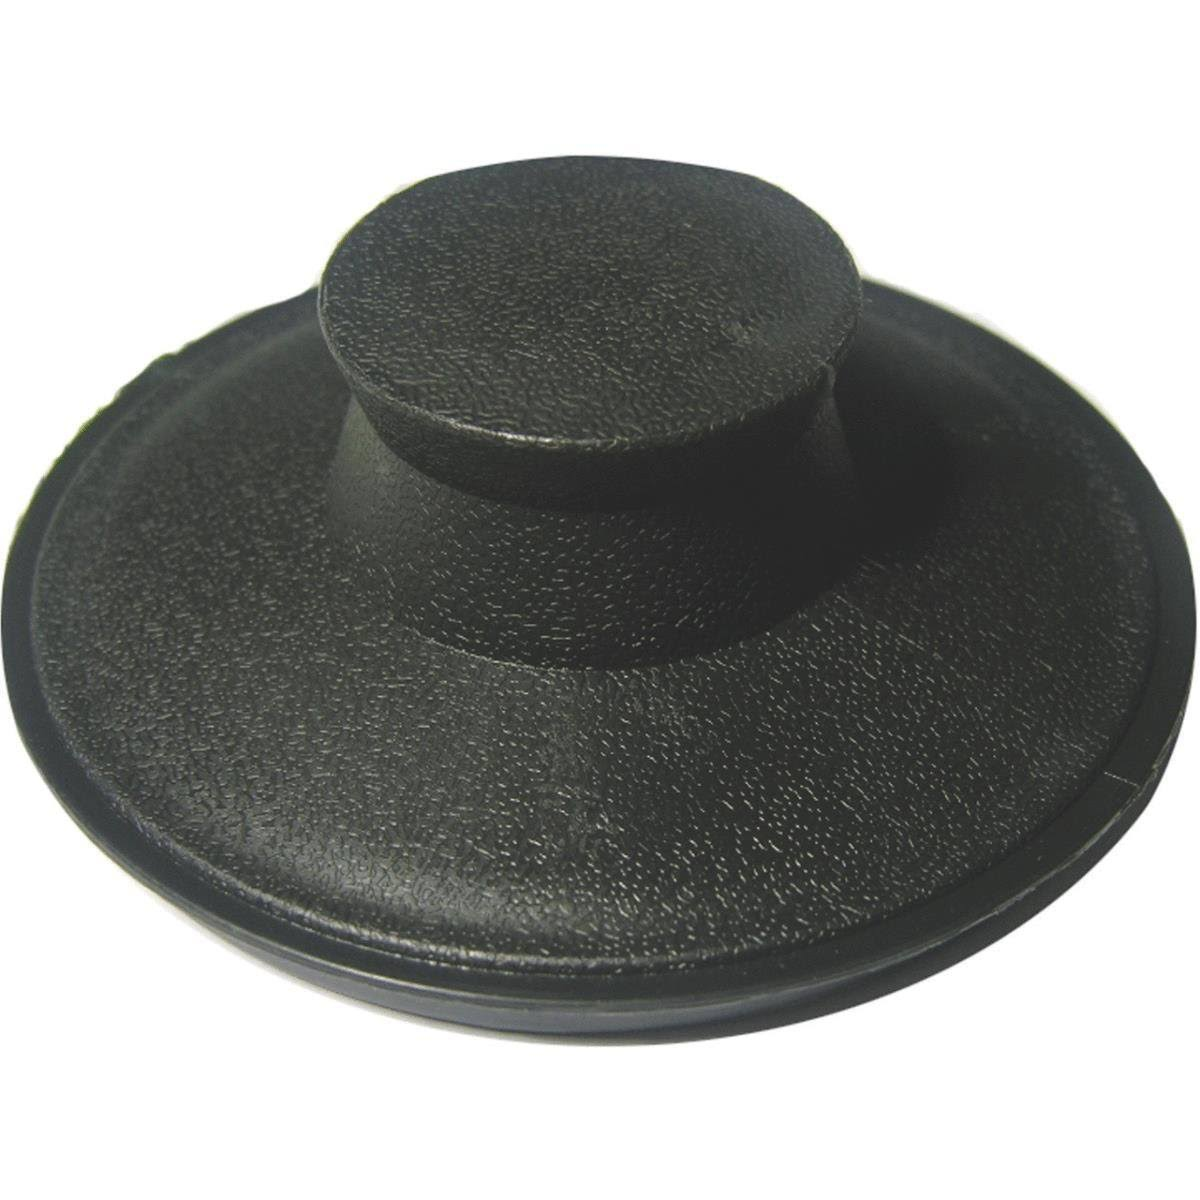 Lasco InSinkErator Disposal Replacement Plastic Stopper